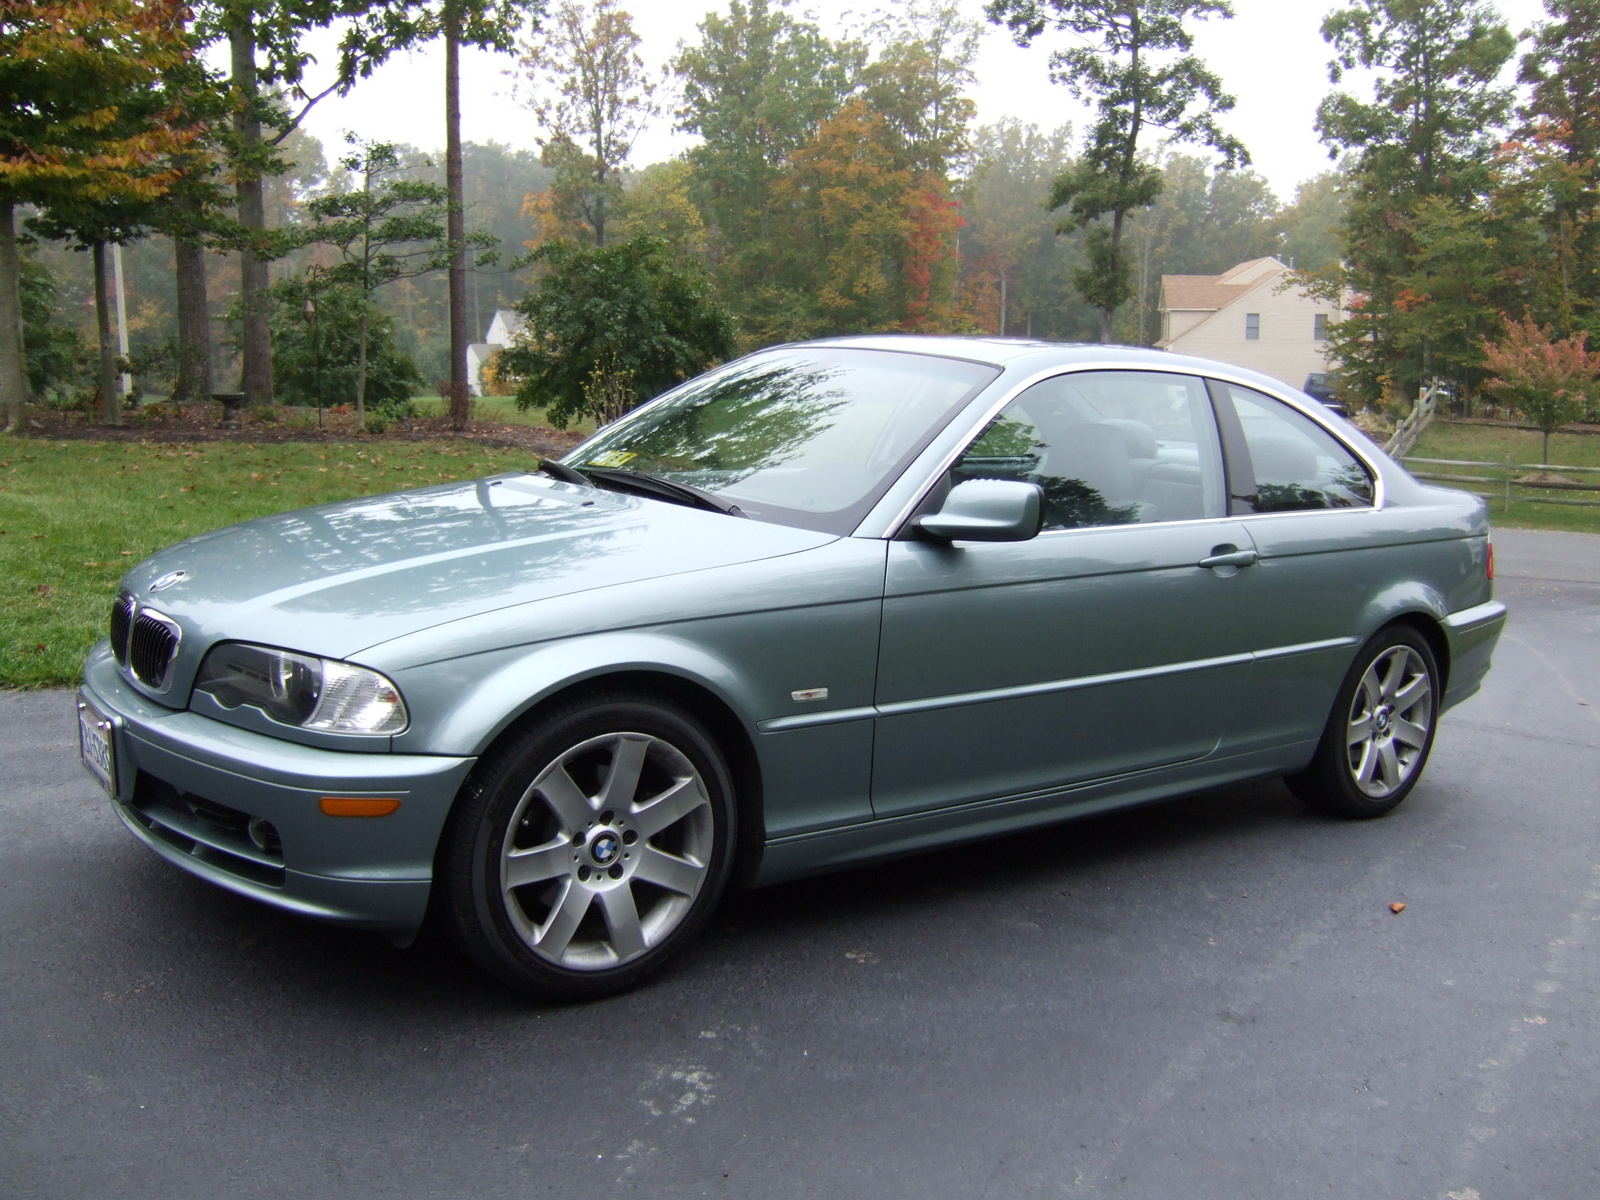 BMW 3 series 325Ci 2003 photo - 11